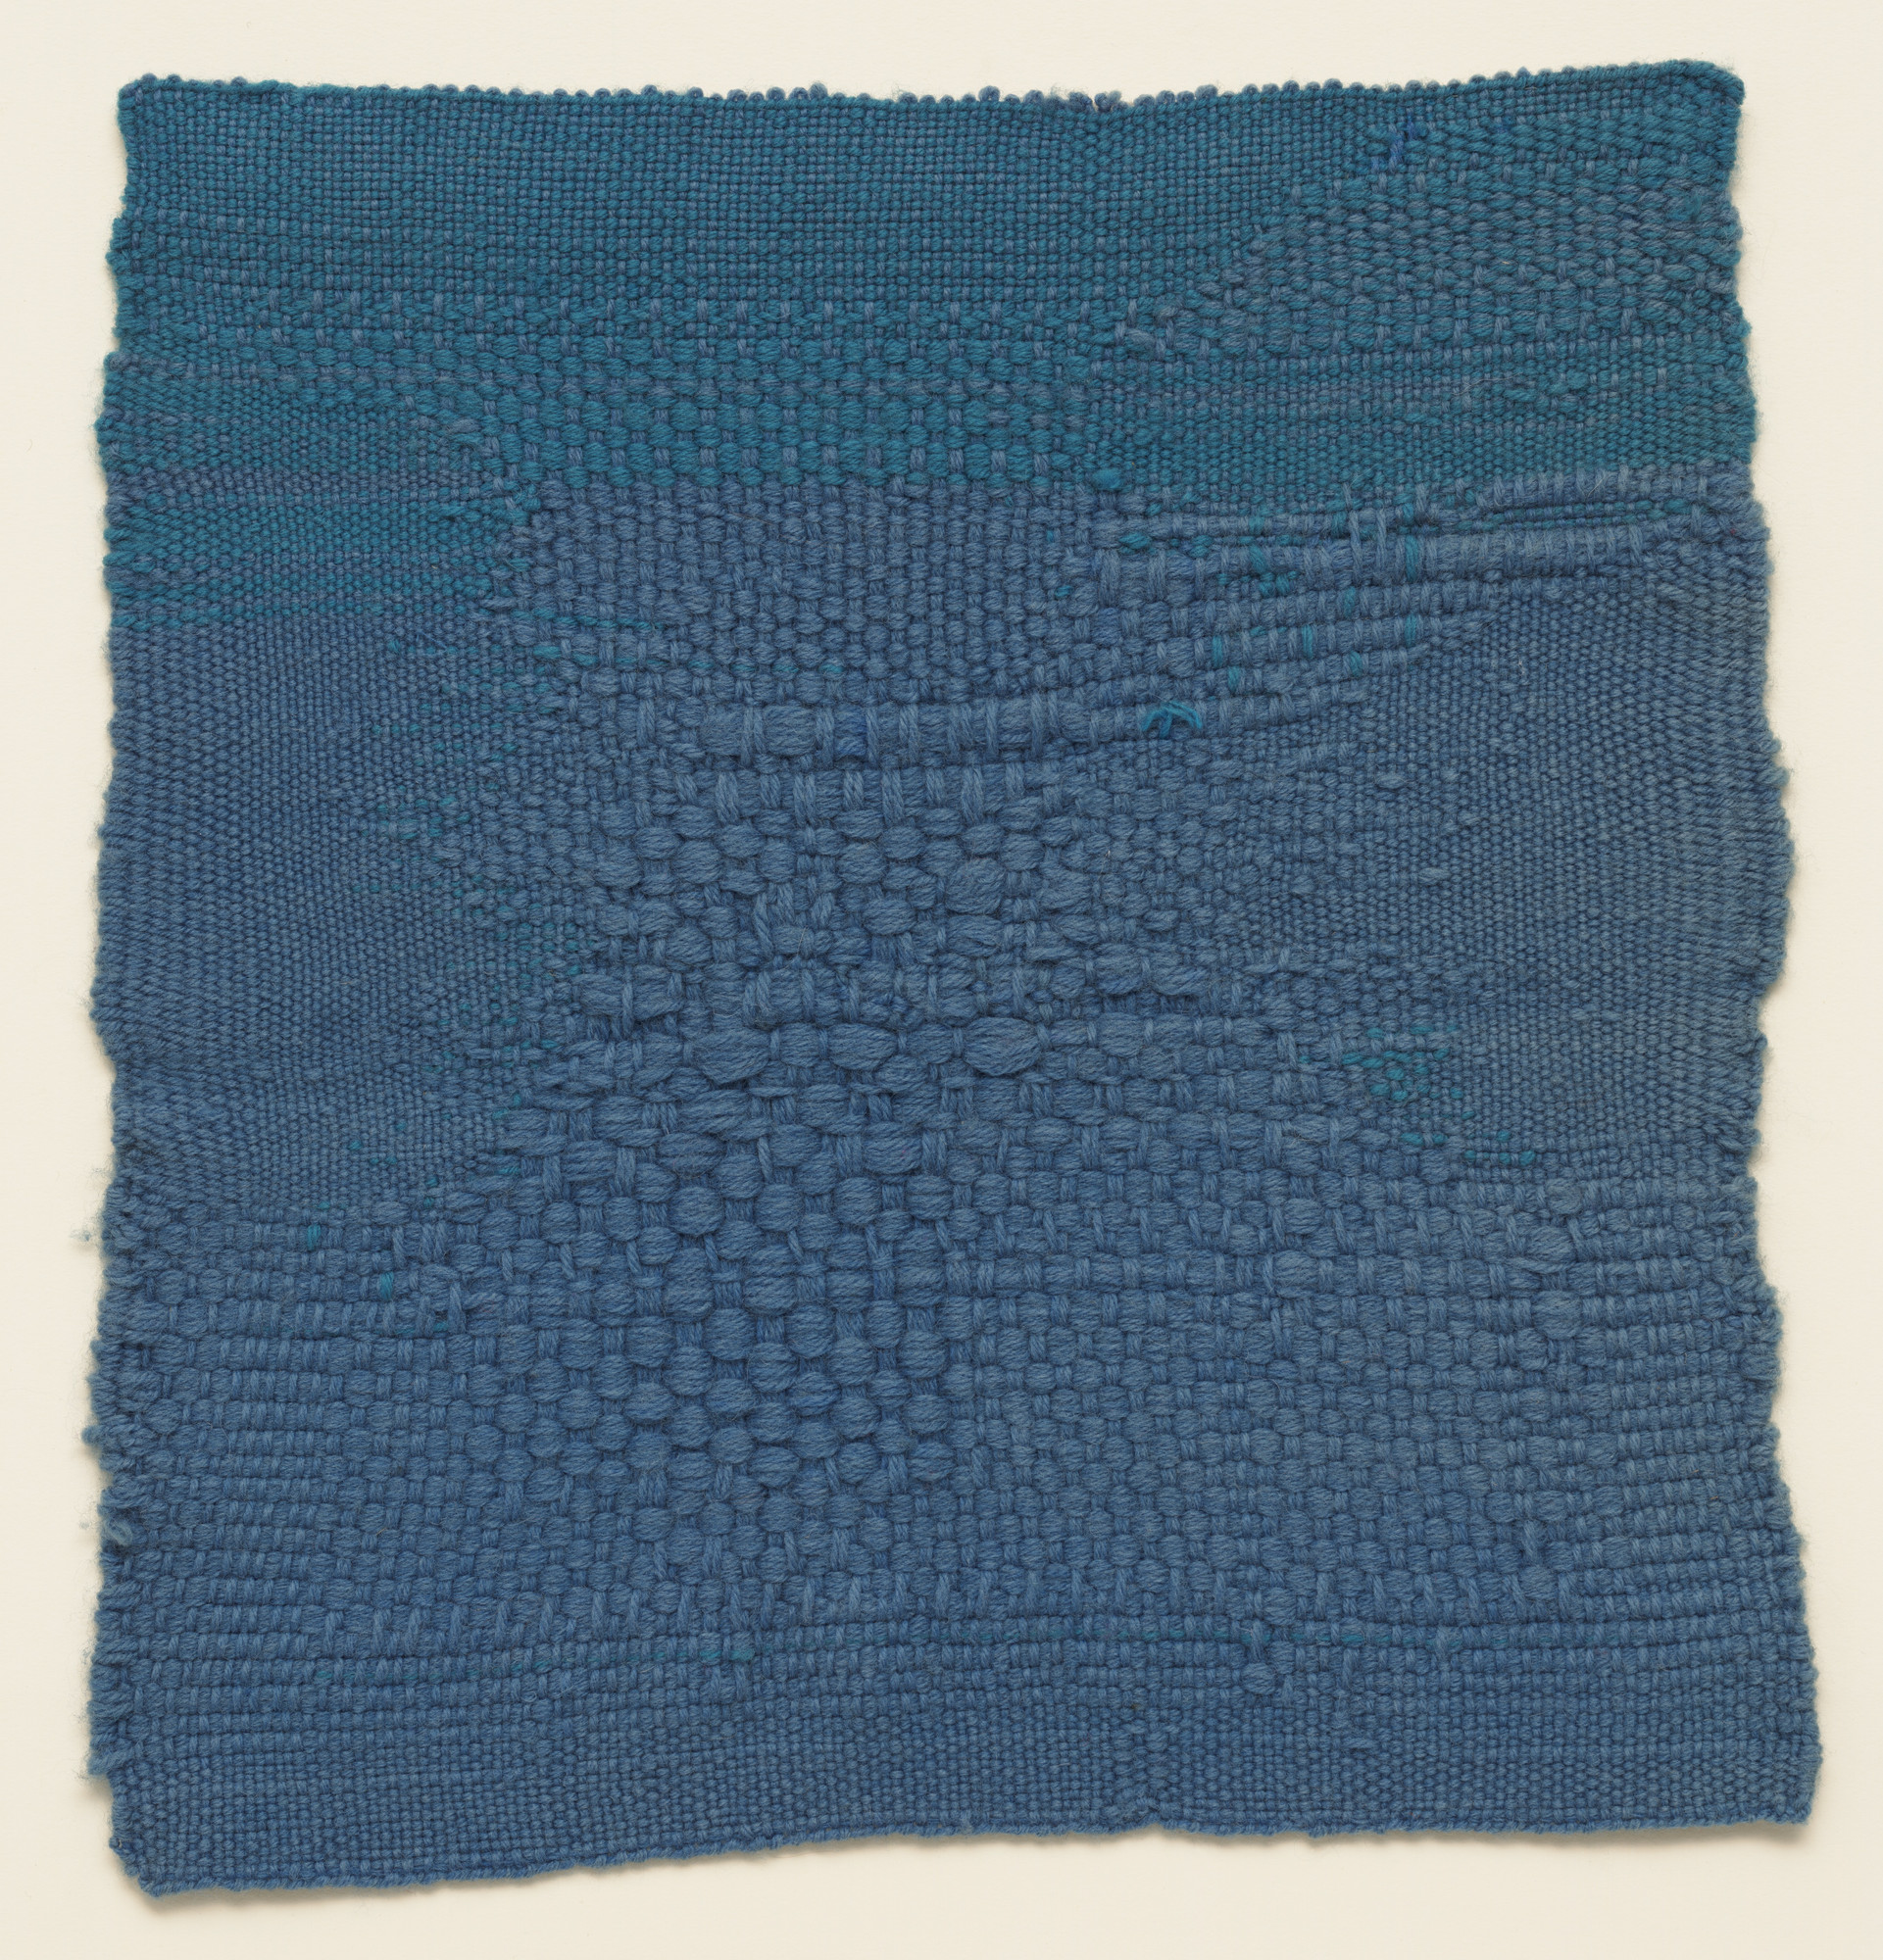 Sheila Hicks. Blue Letter. 1959